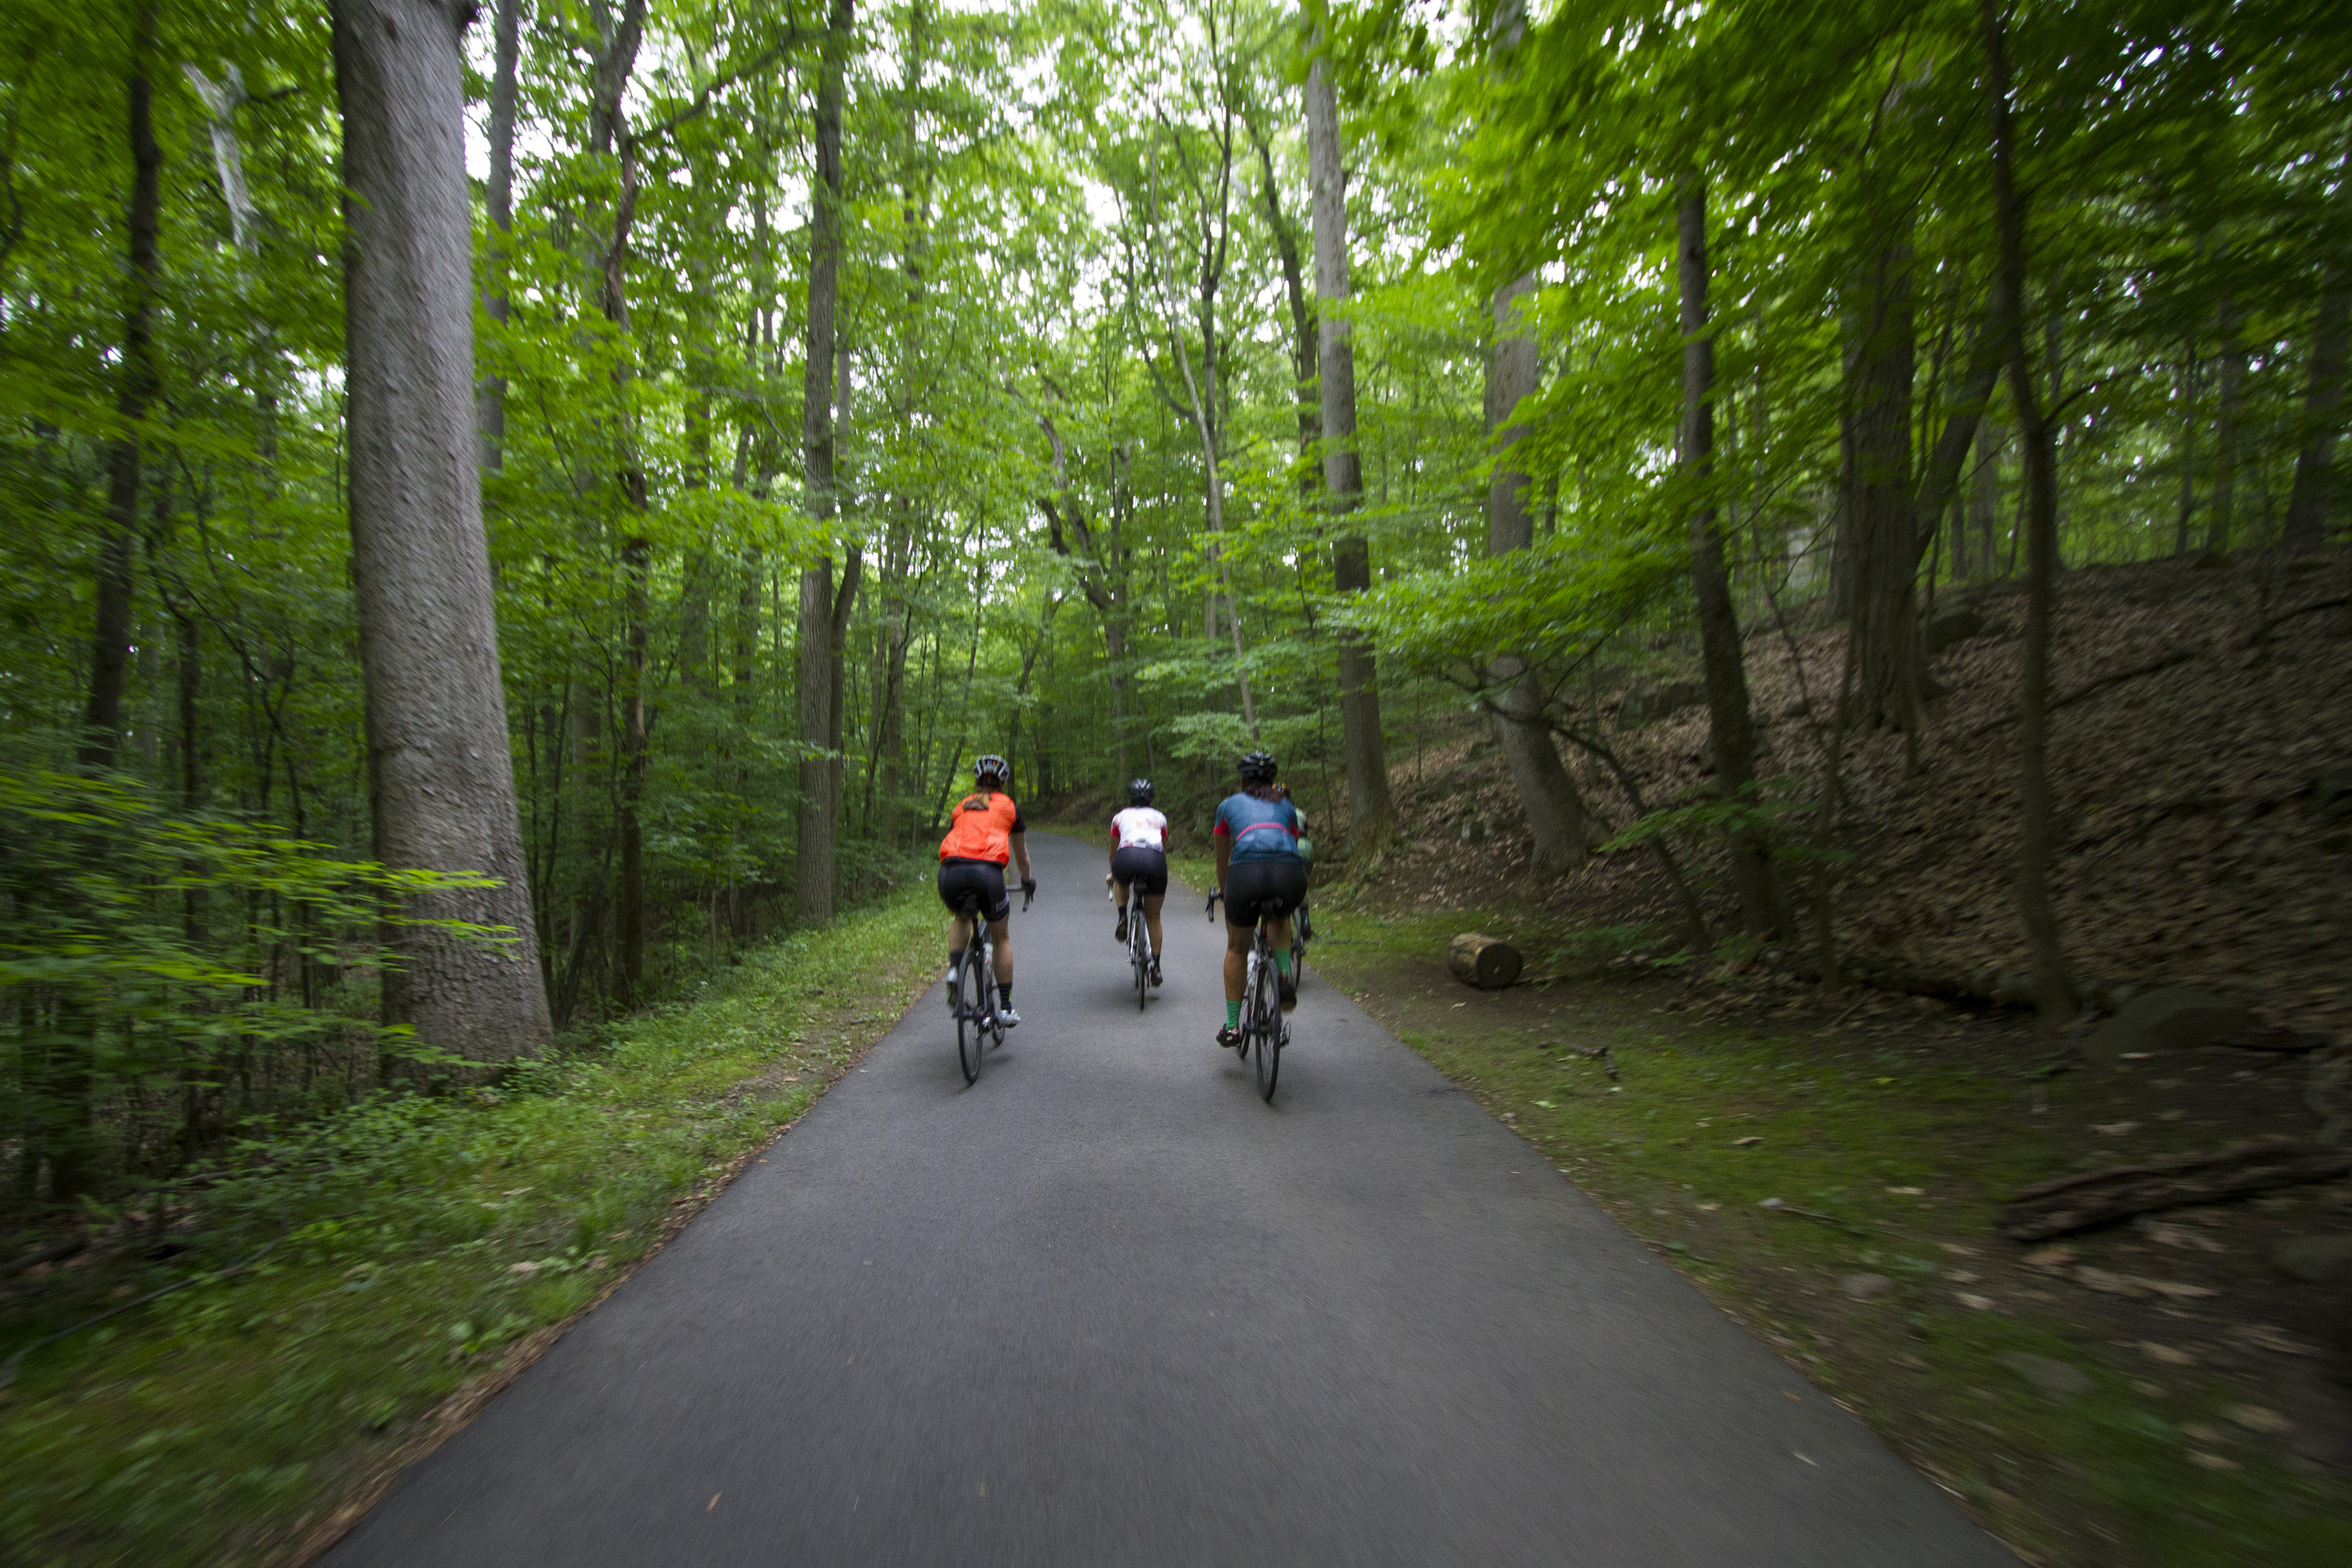 A small group enjoyed the wooded trails on the way back from Piermont.